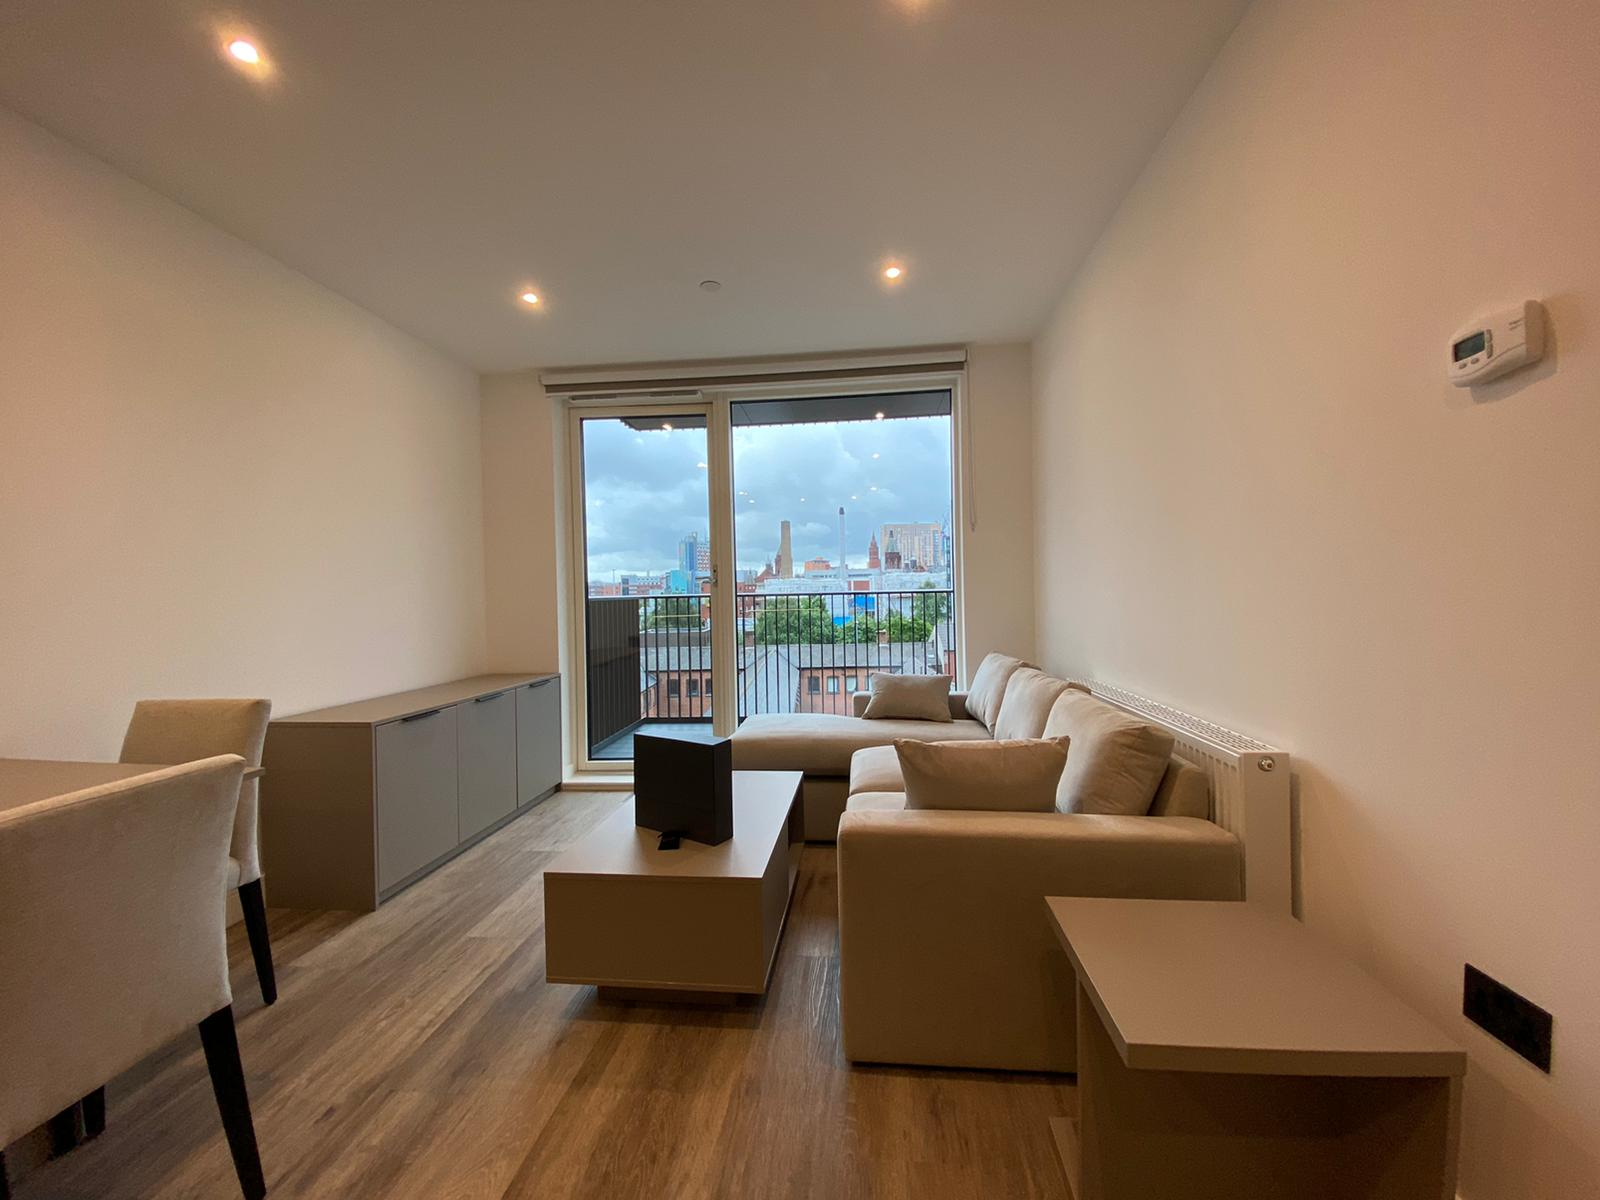 One Bedroom Apartment For Rent at Snowhill Wharf in Birmingham B4